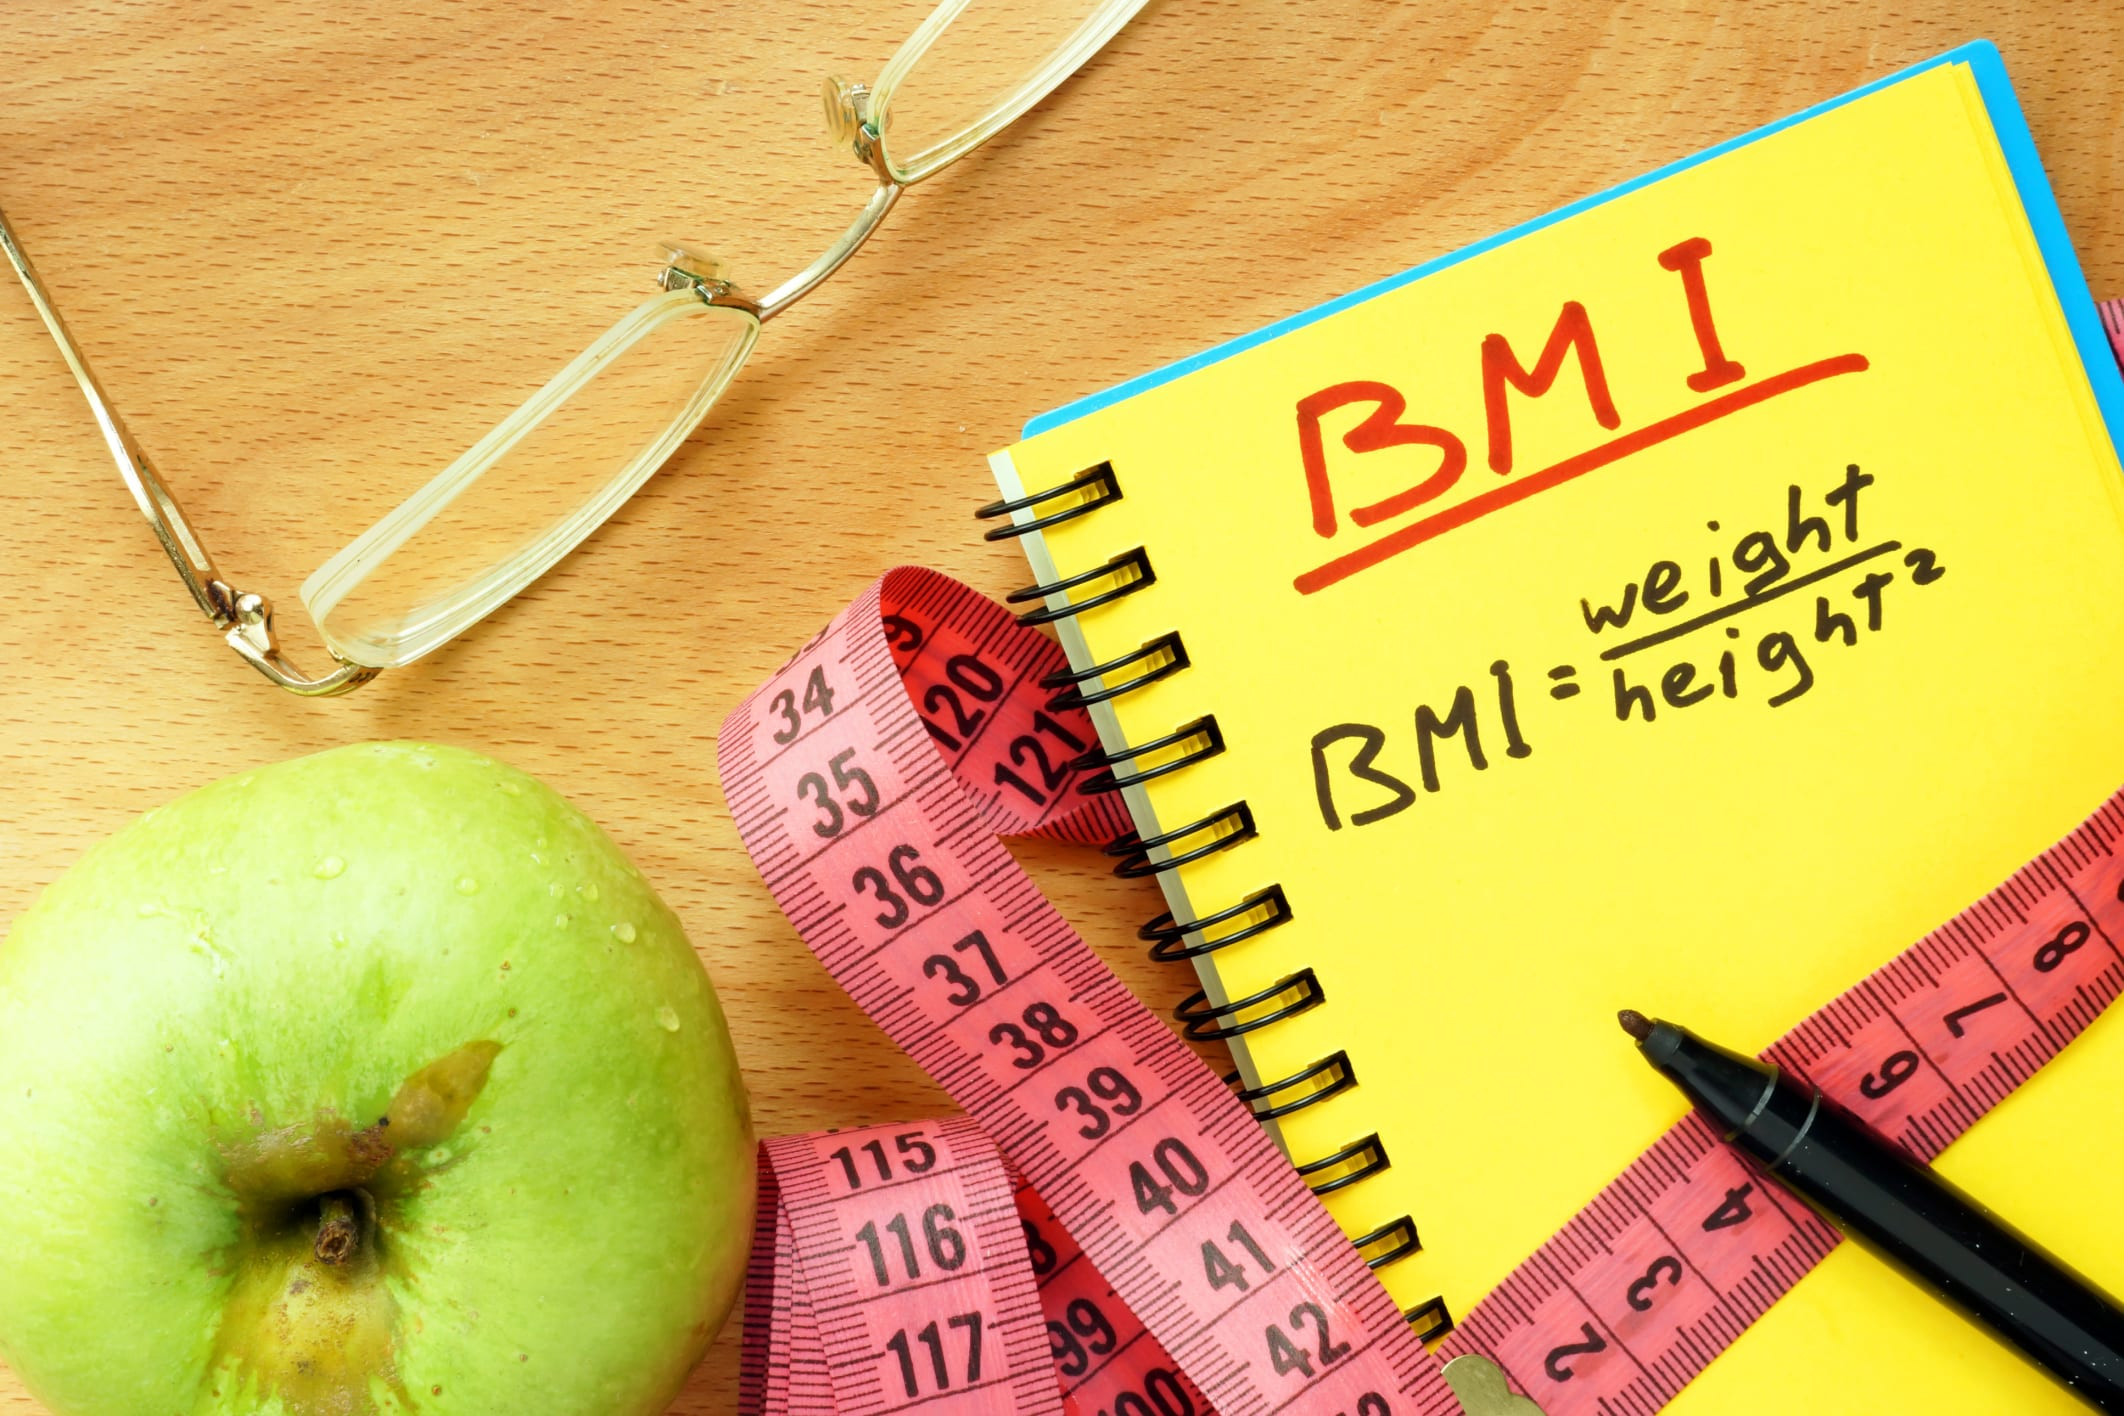 BMI body mass index calculator by www.snoremagazine.com